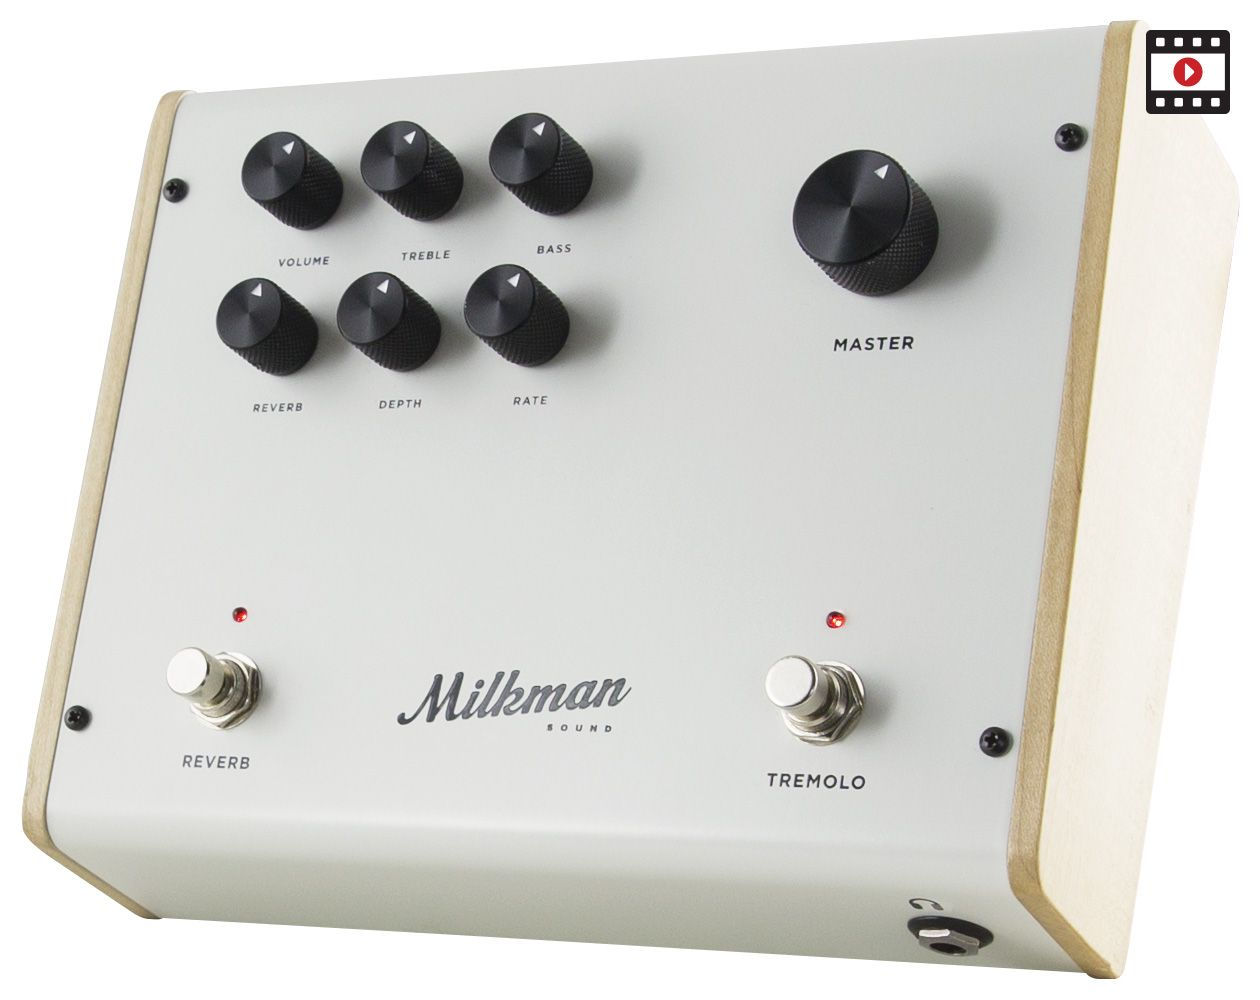 Milkman Sound The Amp Review